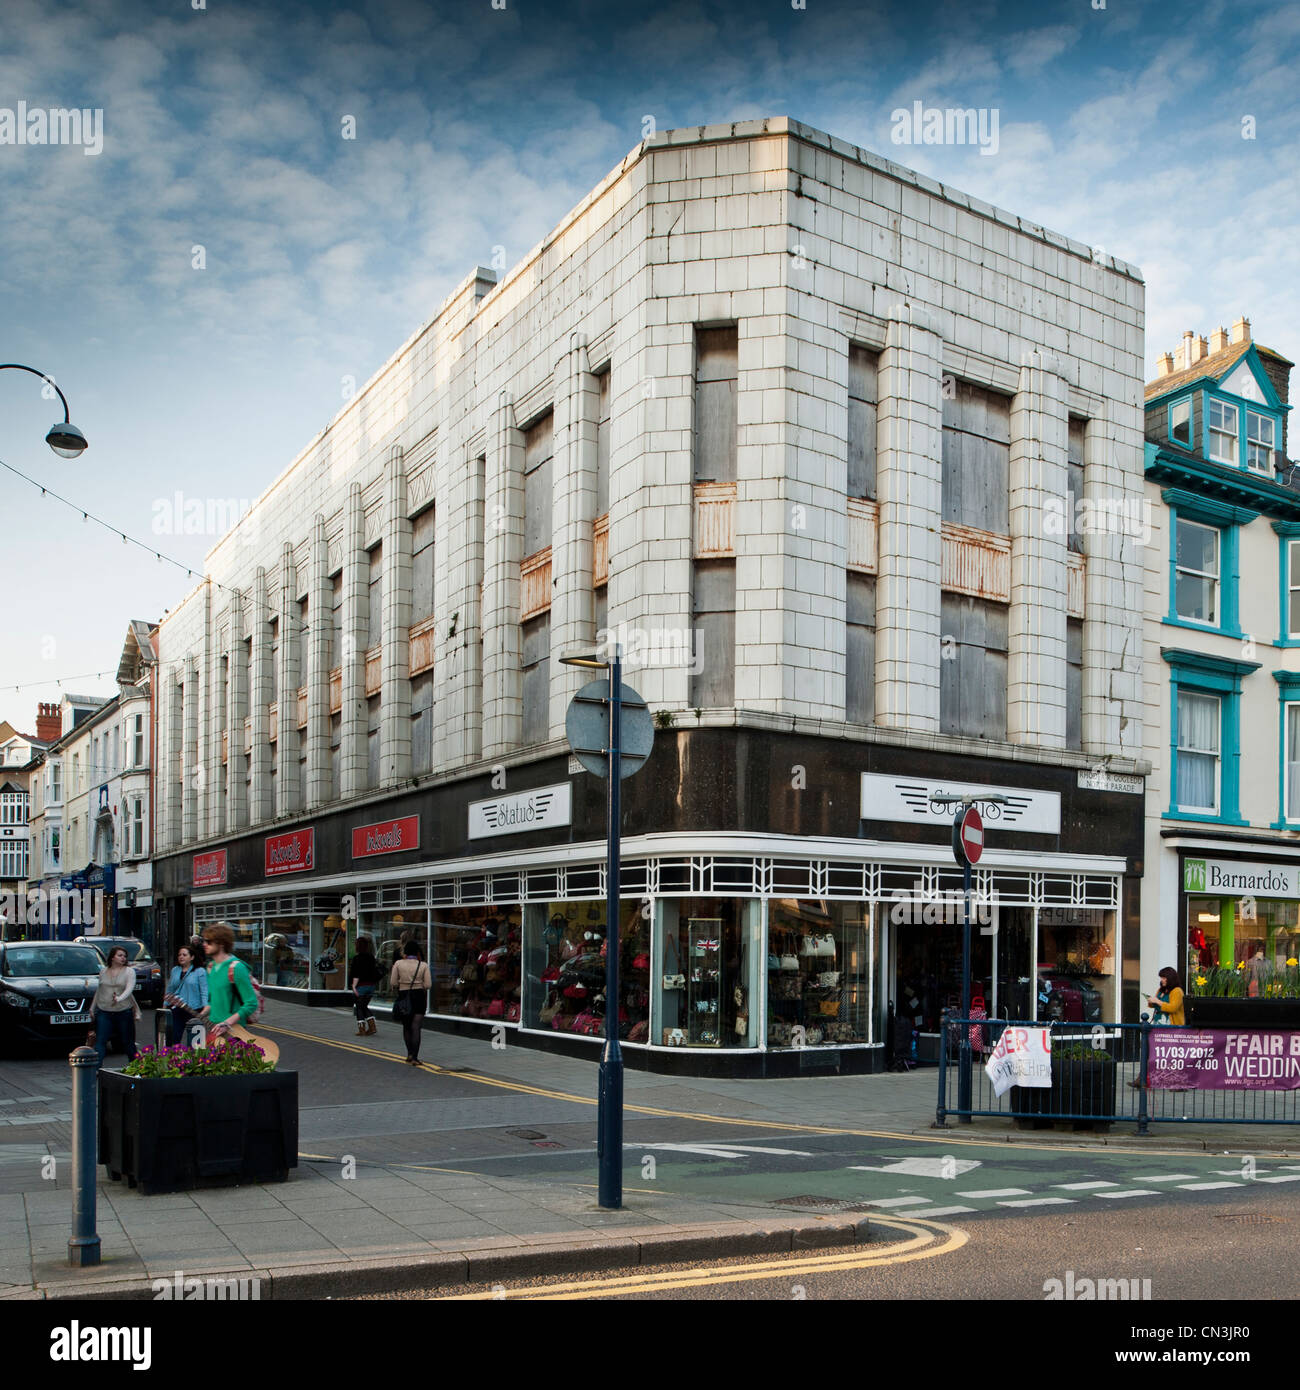 Exterior The Old Burtons Building Classic 1930 39 S Architecture Stock Photo Royalty Free Image